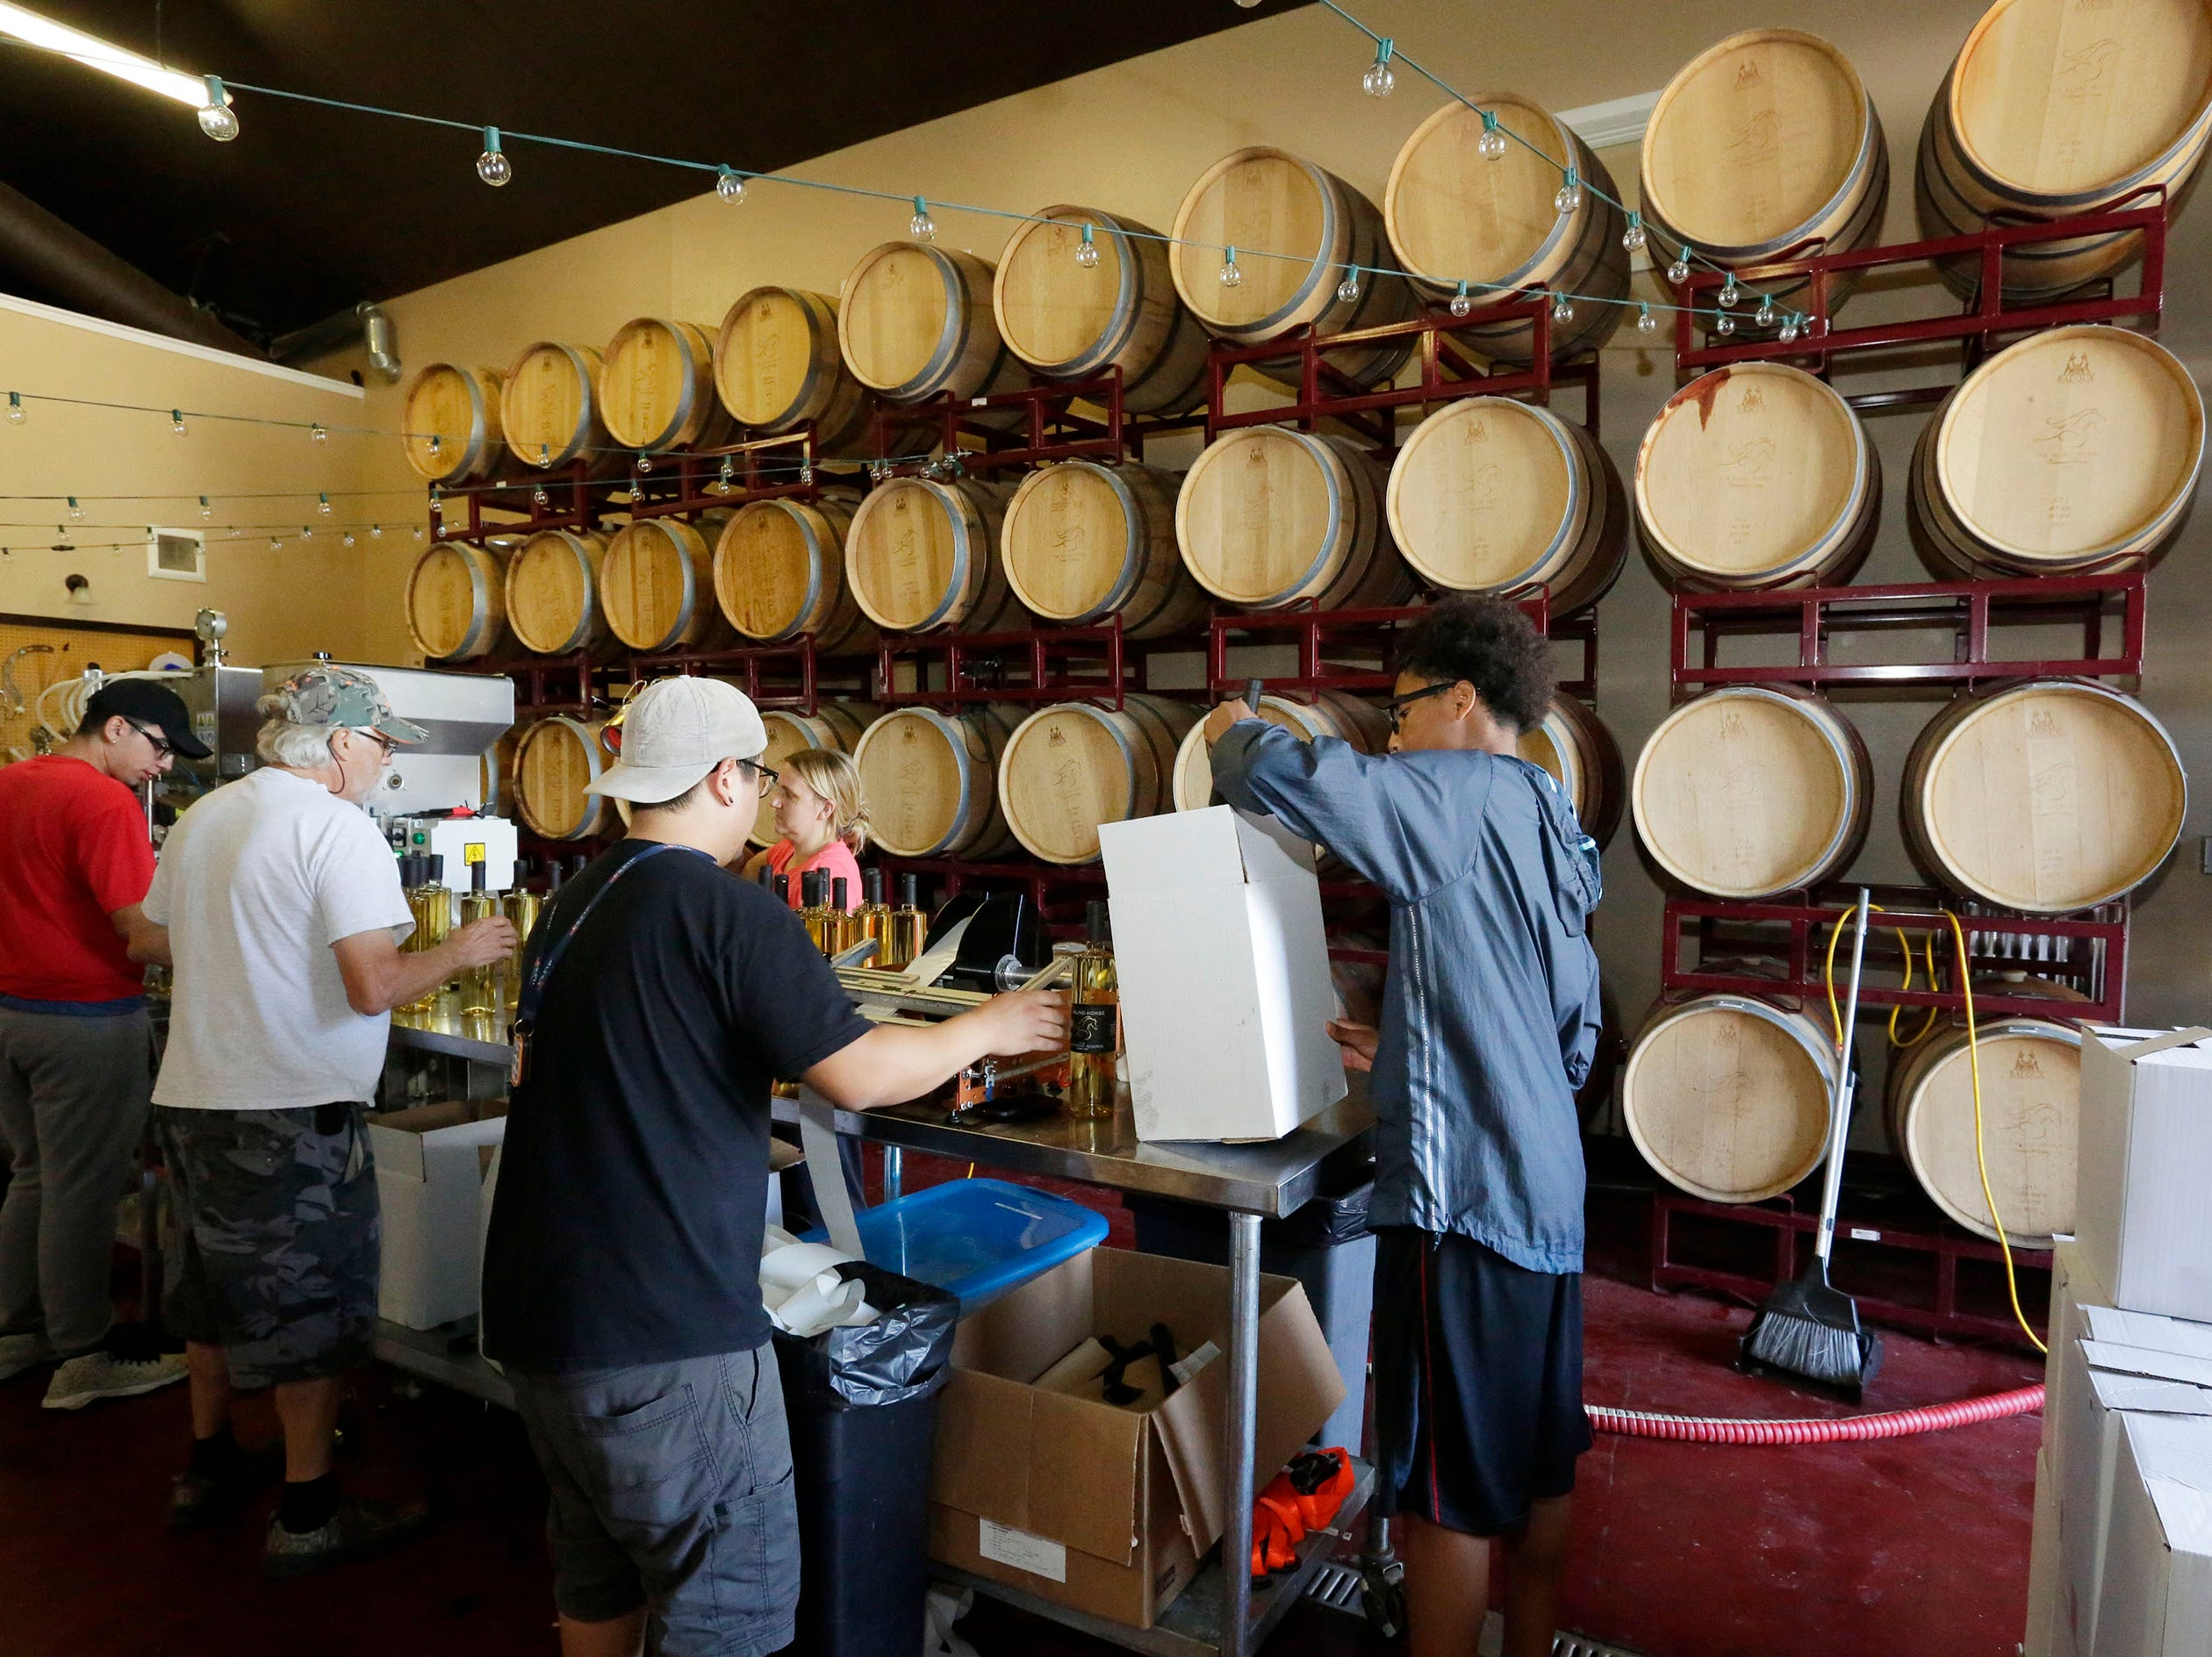 The wine bottling operation at The Blind Horse restaurant and winery, Thursday, September 13, 2018, in Kohler, Wis.